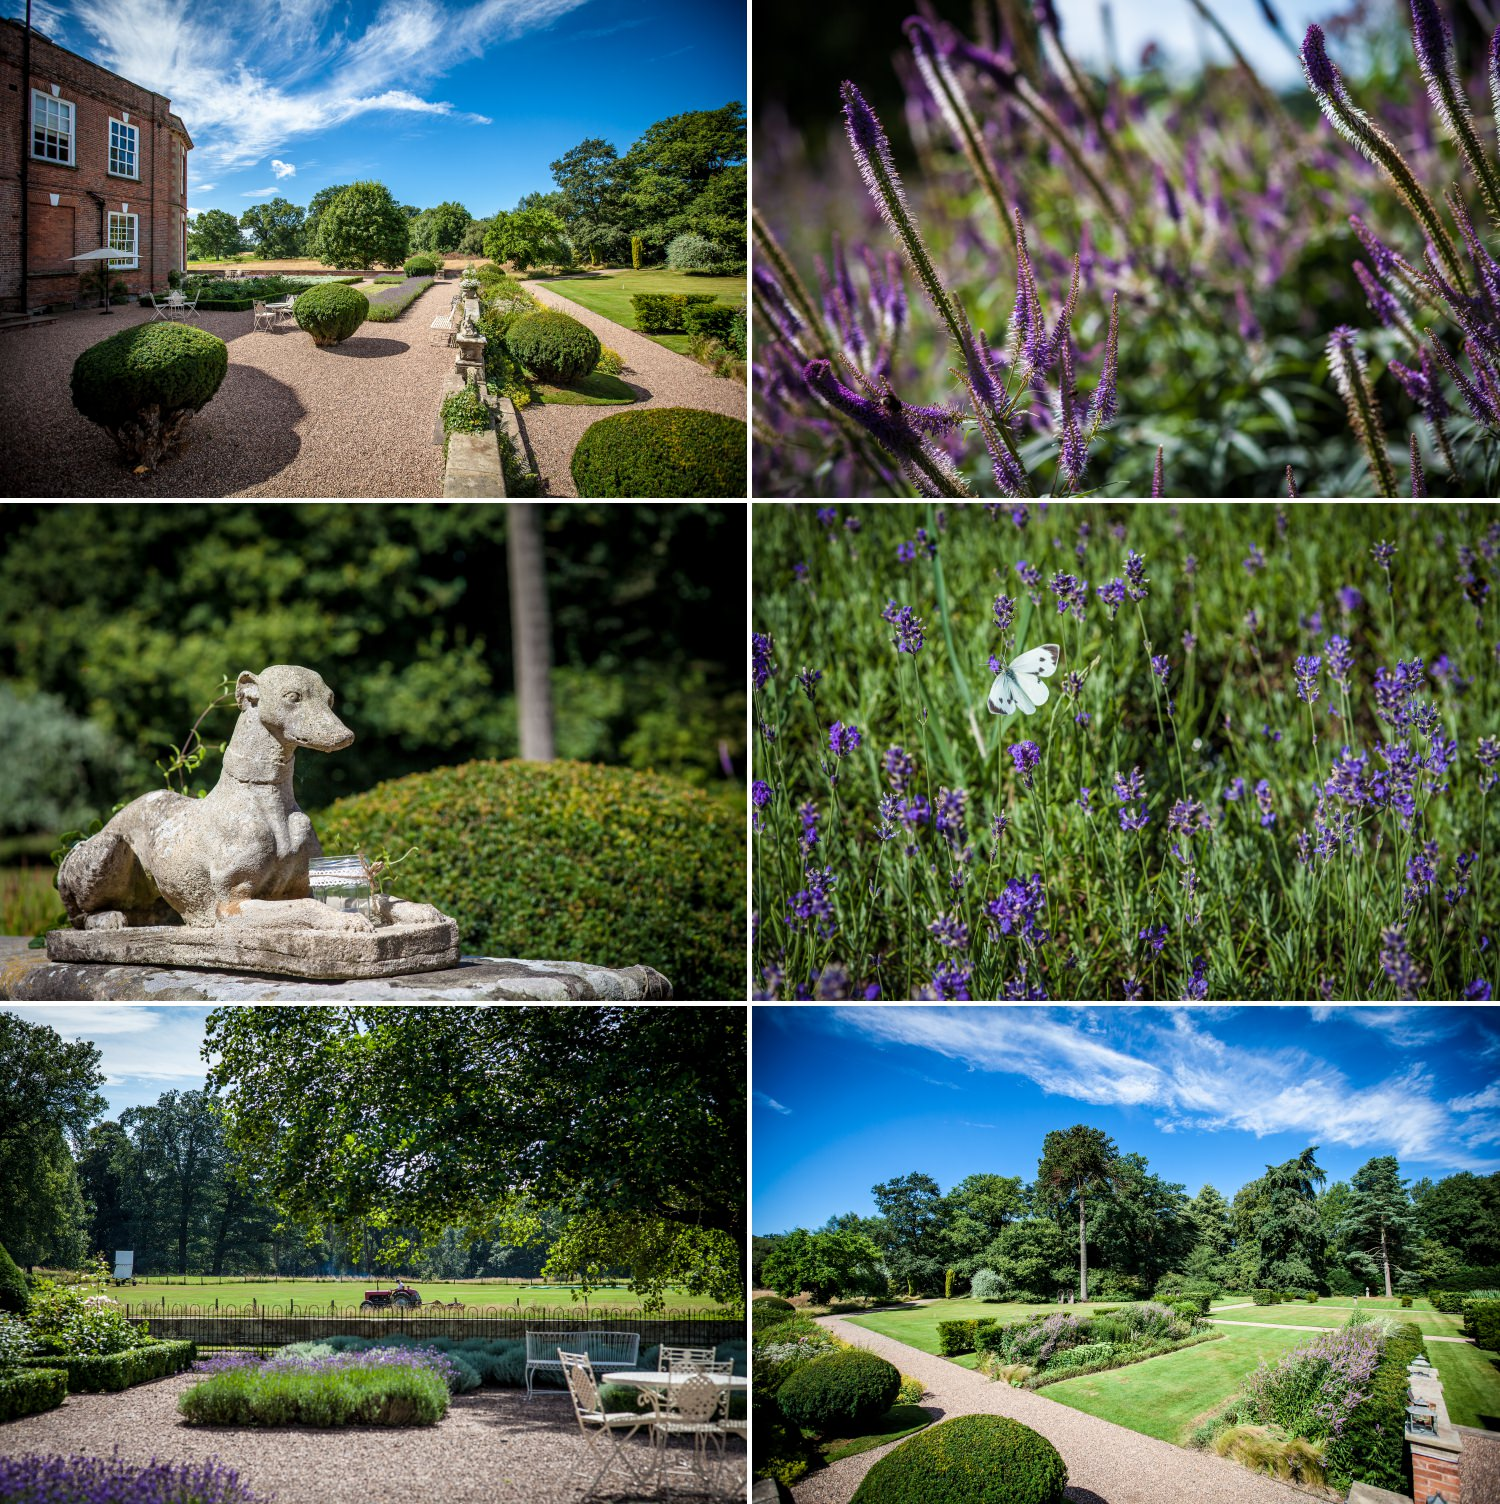 Wedding Photography of grounds at Iscoyd Park